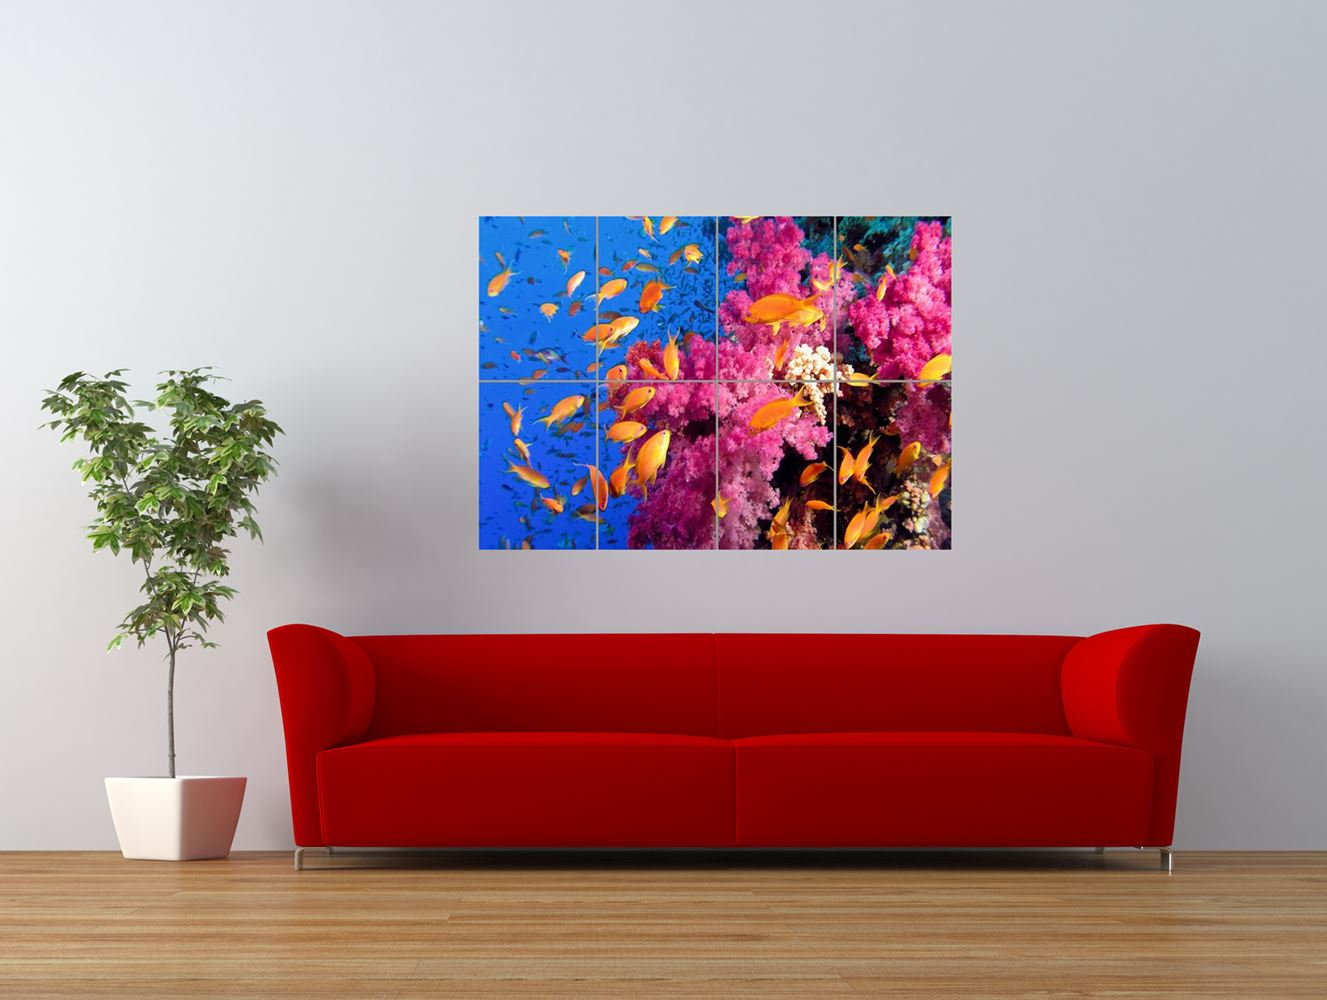 coral reef fish under water sea tropical giant art print panel poster nor0278 ebay. Black Bedroom Furniture Sets. Home Design Ideas